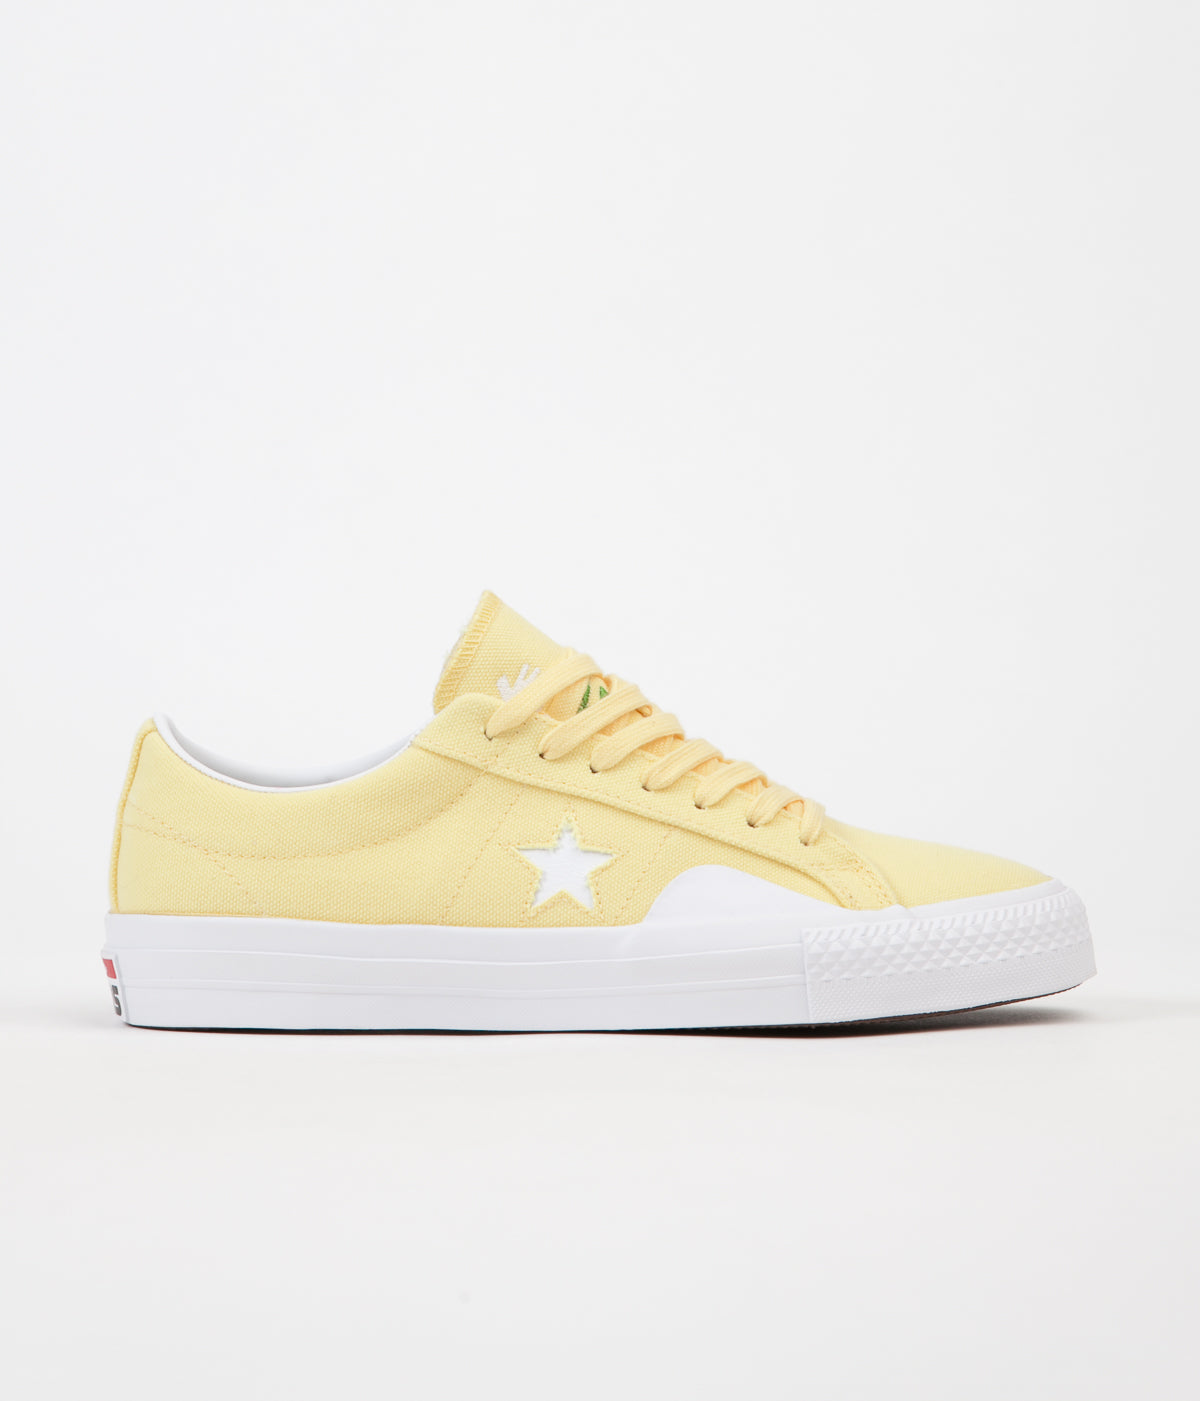 b0856aff29d ... Converse x Chocolate One Star Pro Ox Shoes - Yellow   White   Days  Ahead ...